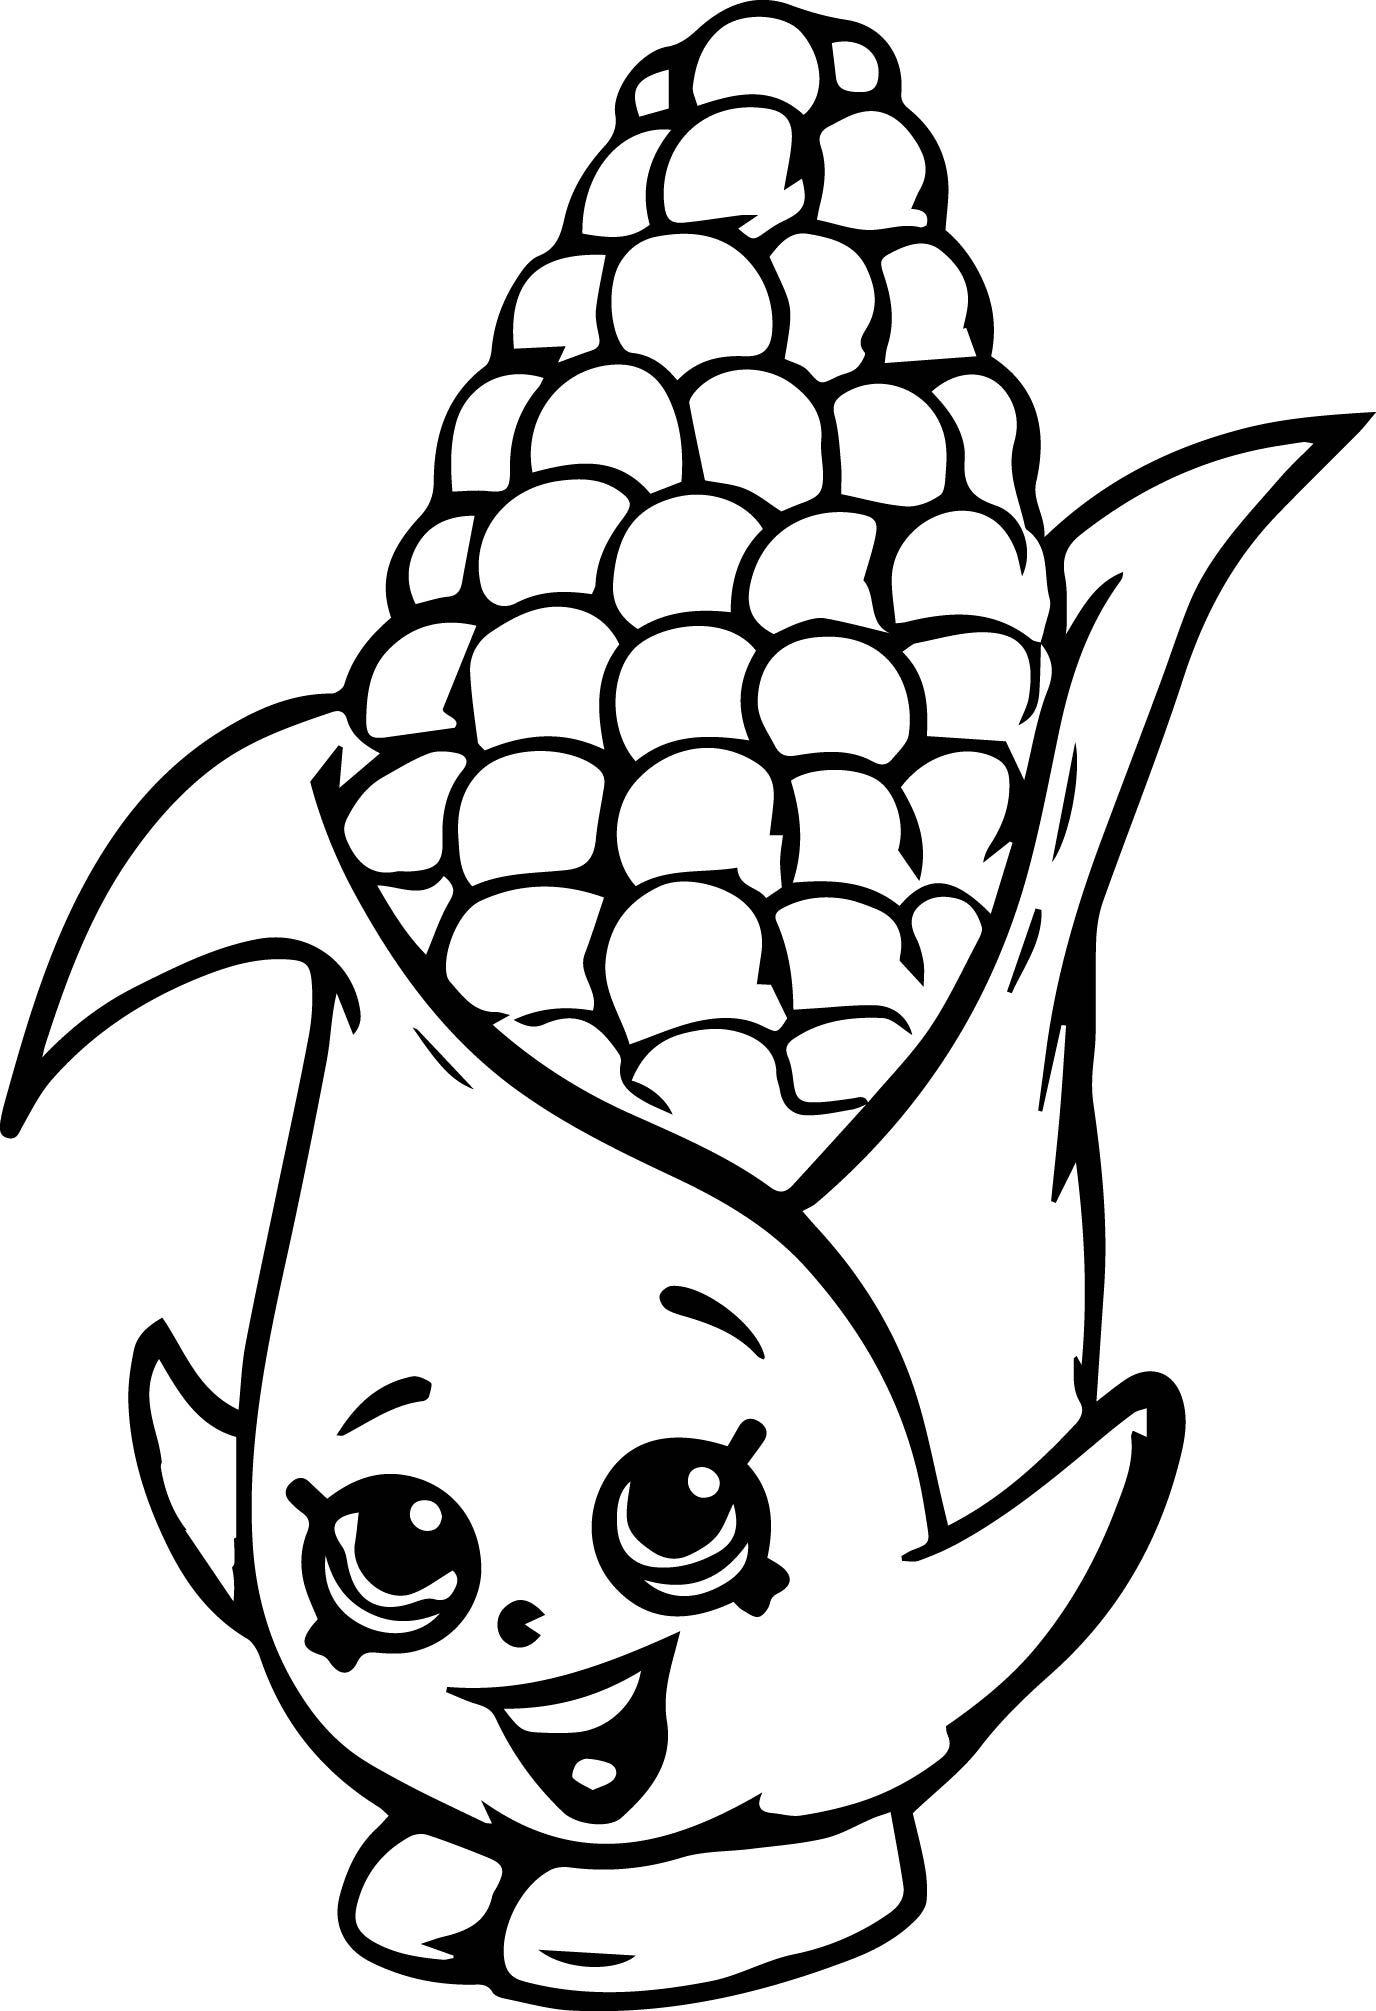 Awesome Corny Cob Coloring Page